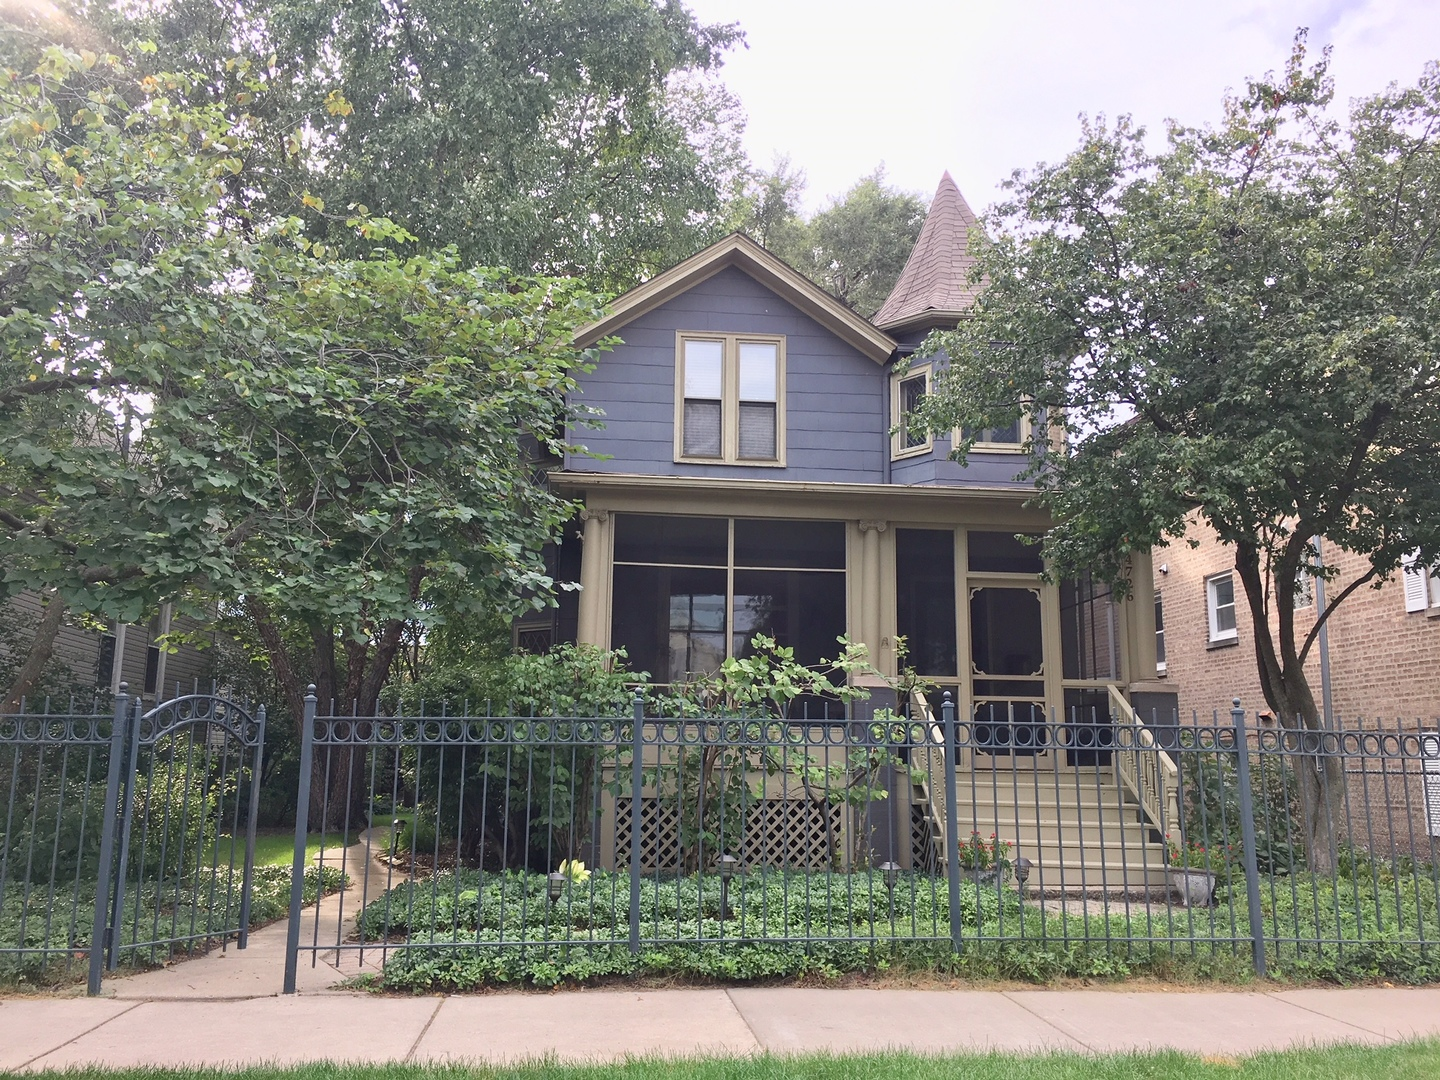 4 House in Uptown